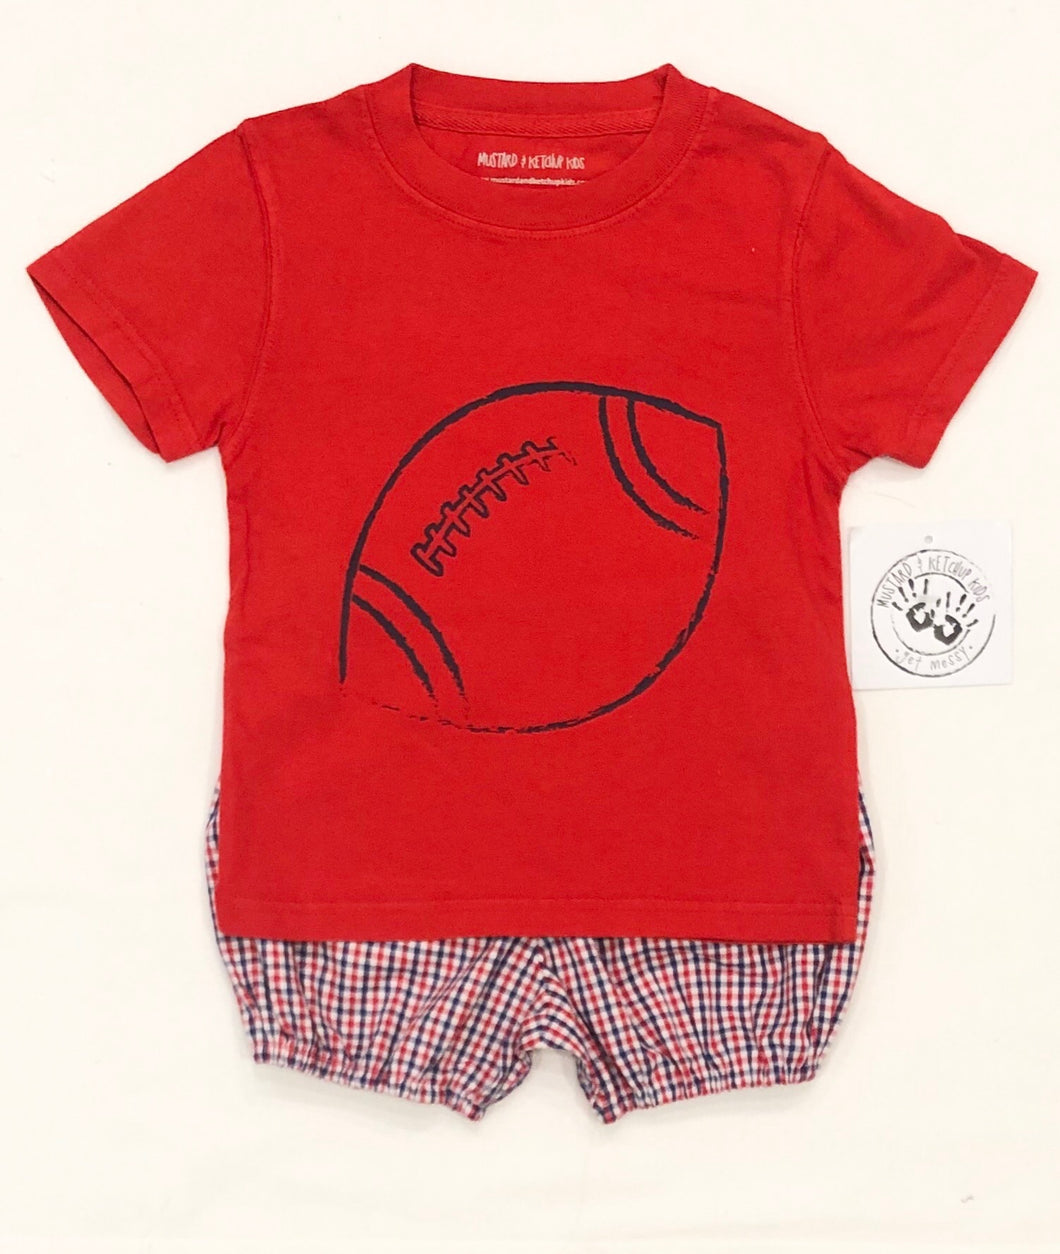 Red & Navy Football Tee by Mustard & Ketchup Kids